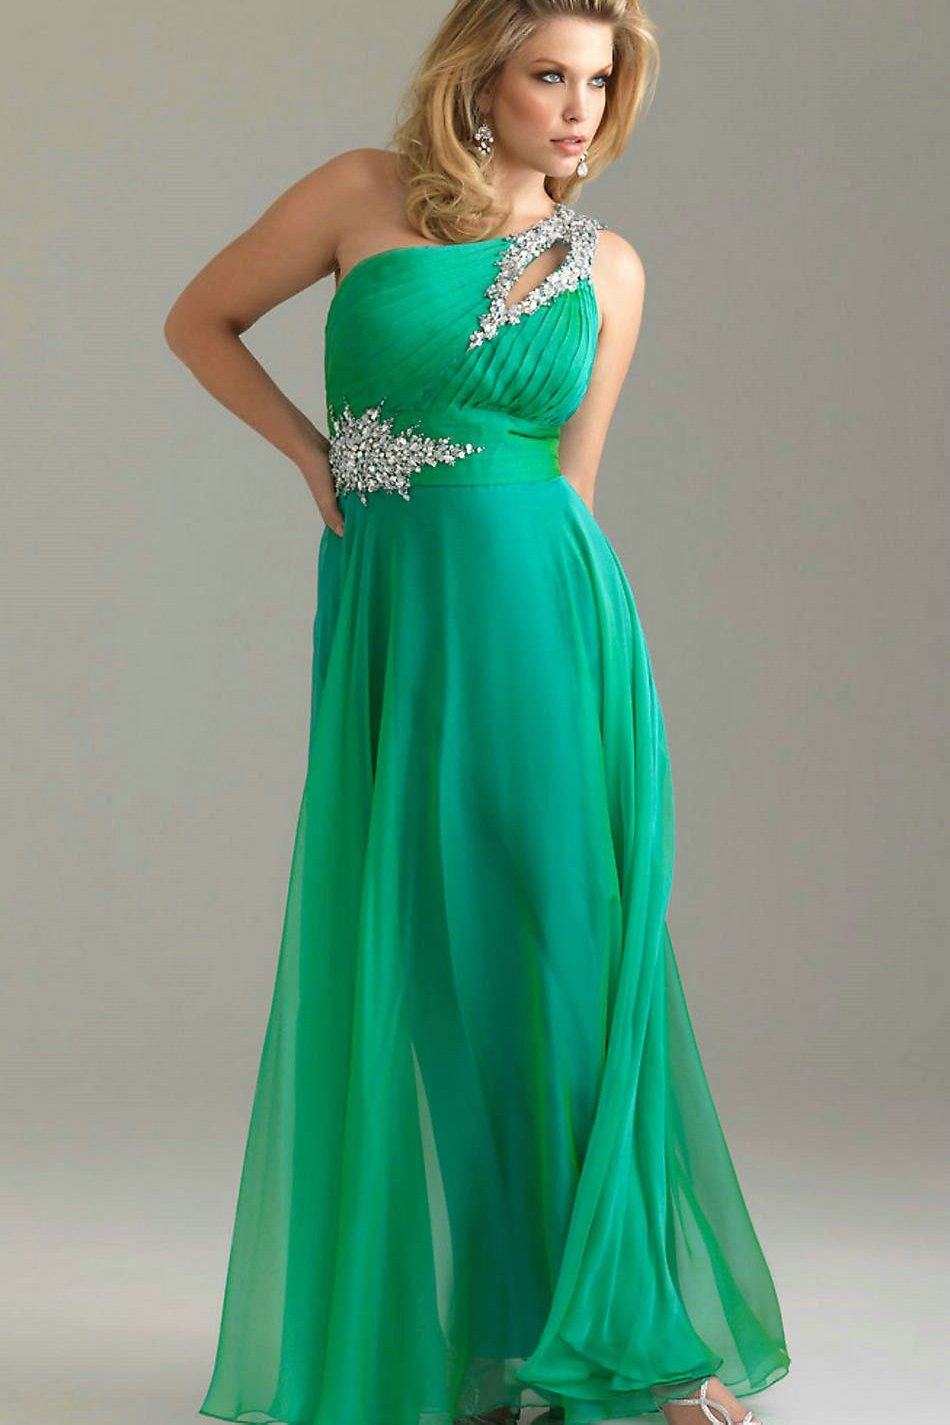 Look stylish with formal dresses plus size gorgeous ideas